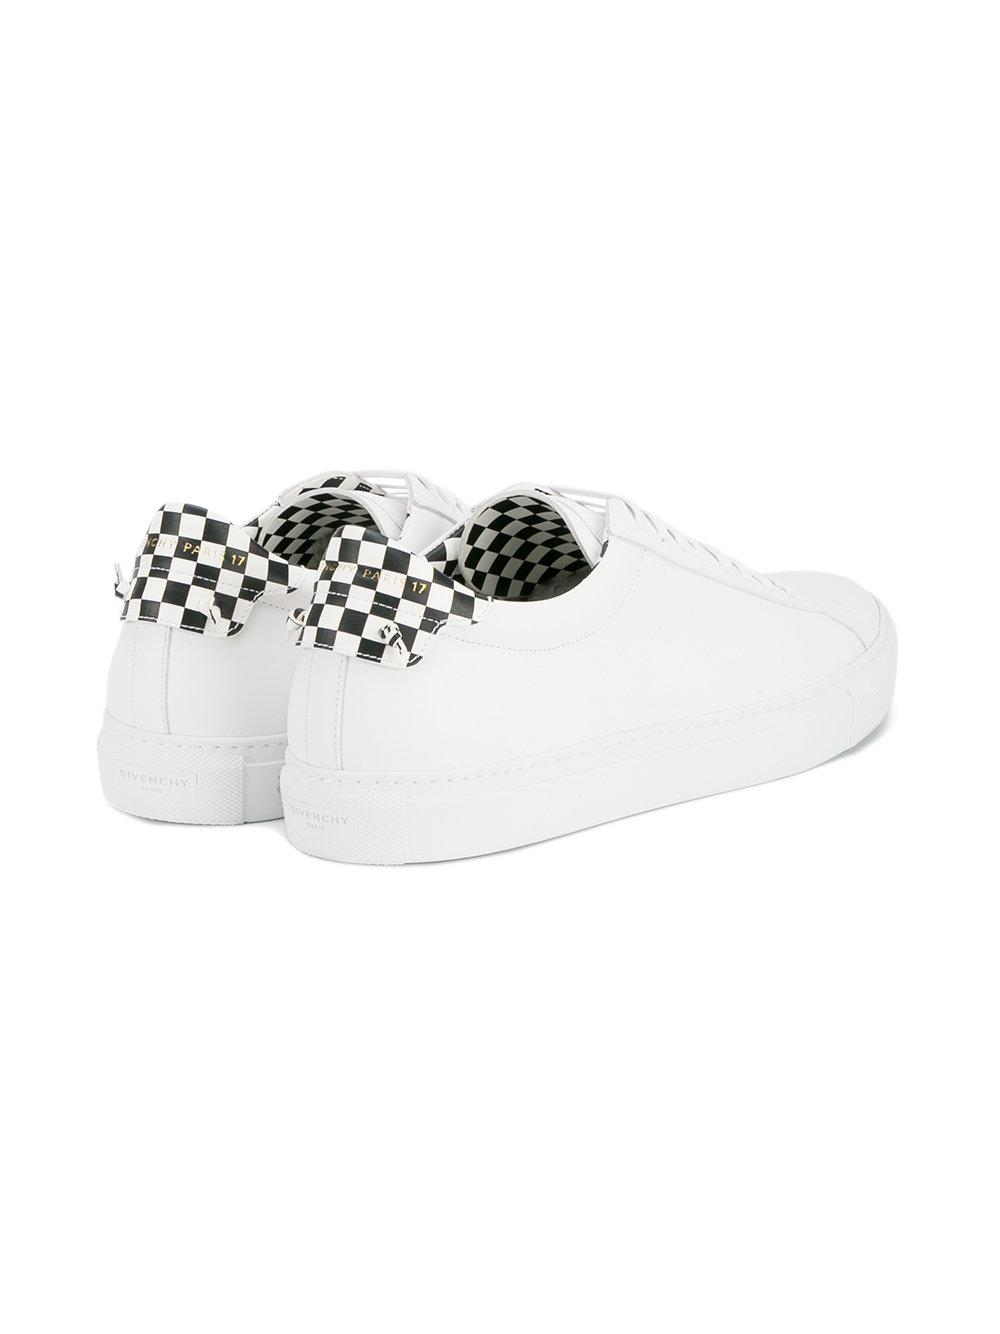 Givenchy Leather Urban Knots Checkerboard Sneakers in White